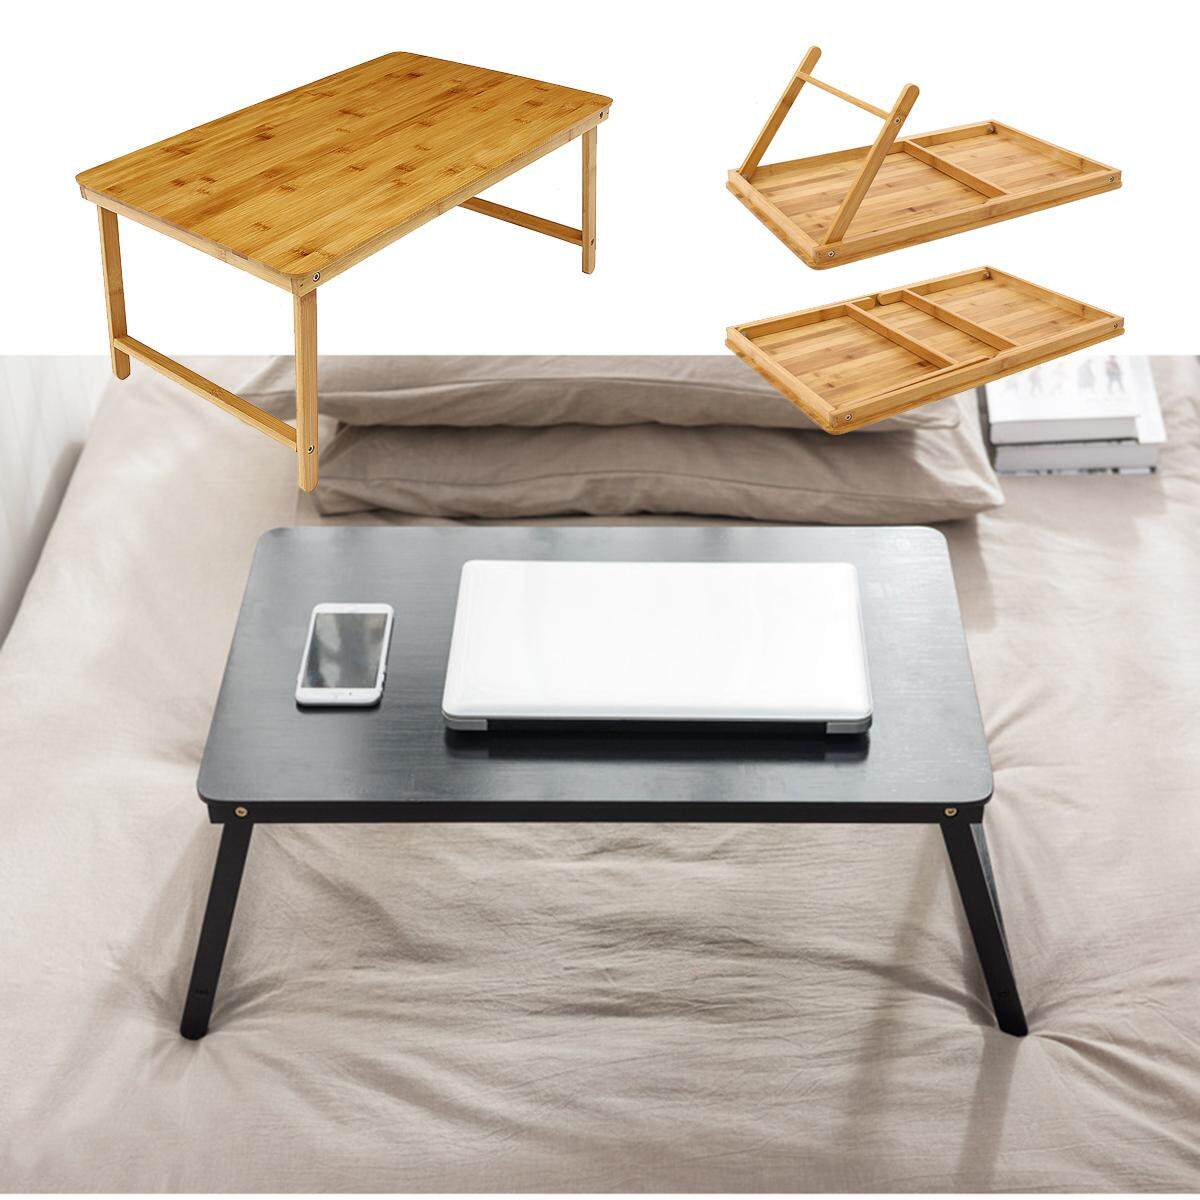 Picture of: Portable Folding Lap Desk Bamboo Laptop Coffee Tea Tray Natural Bed Table Stand